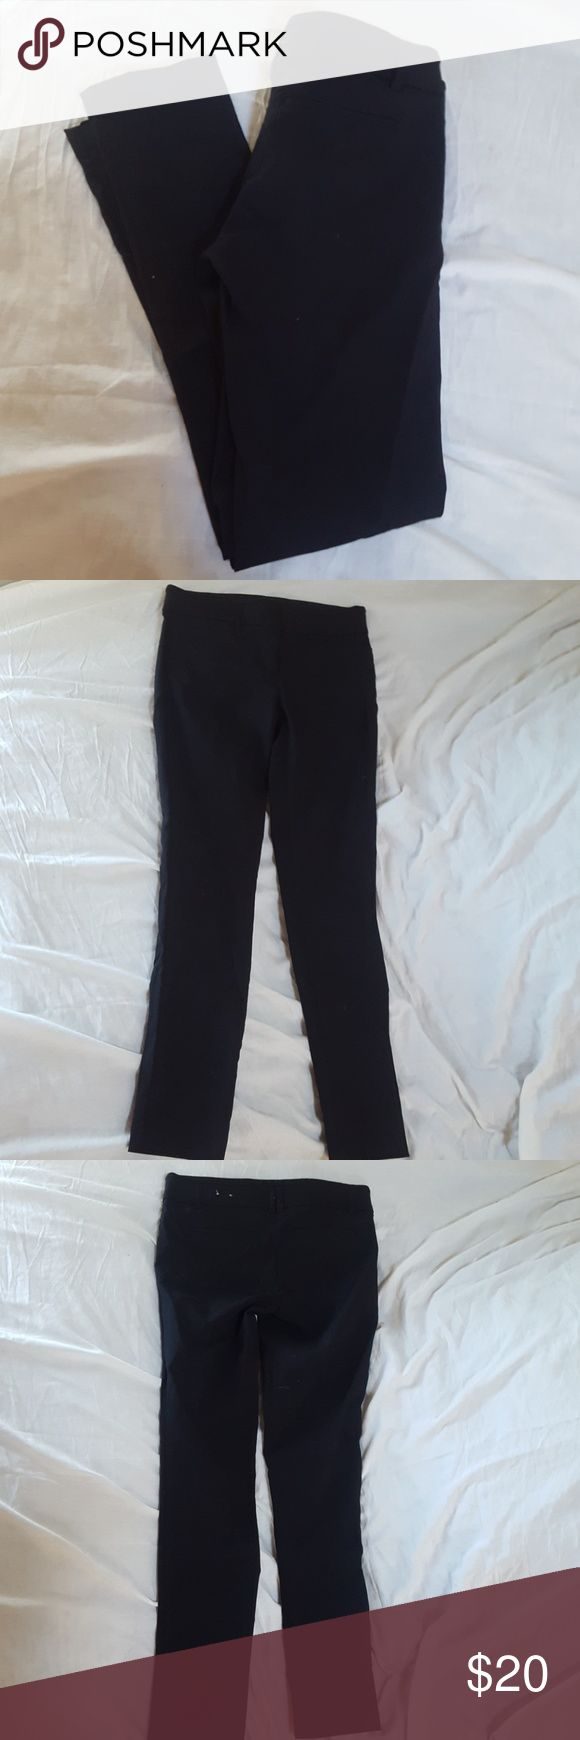 Candies Audrey skinny dress pant Black skinny dress pants never worn but no tags Candie's Pants Skinny